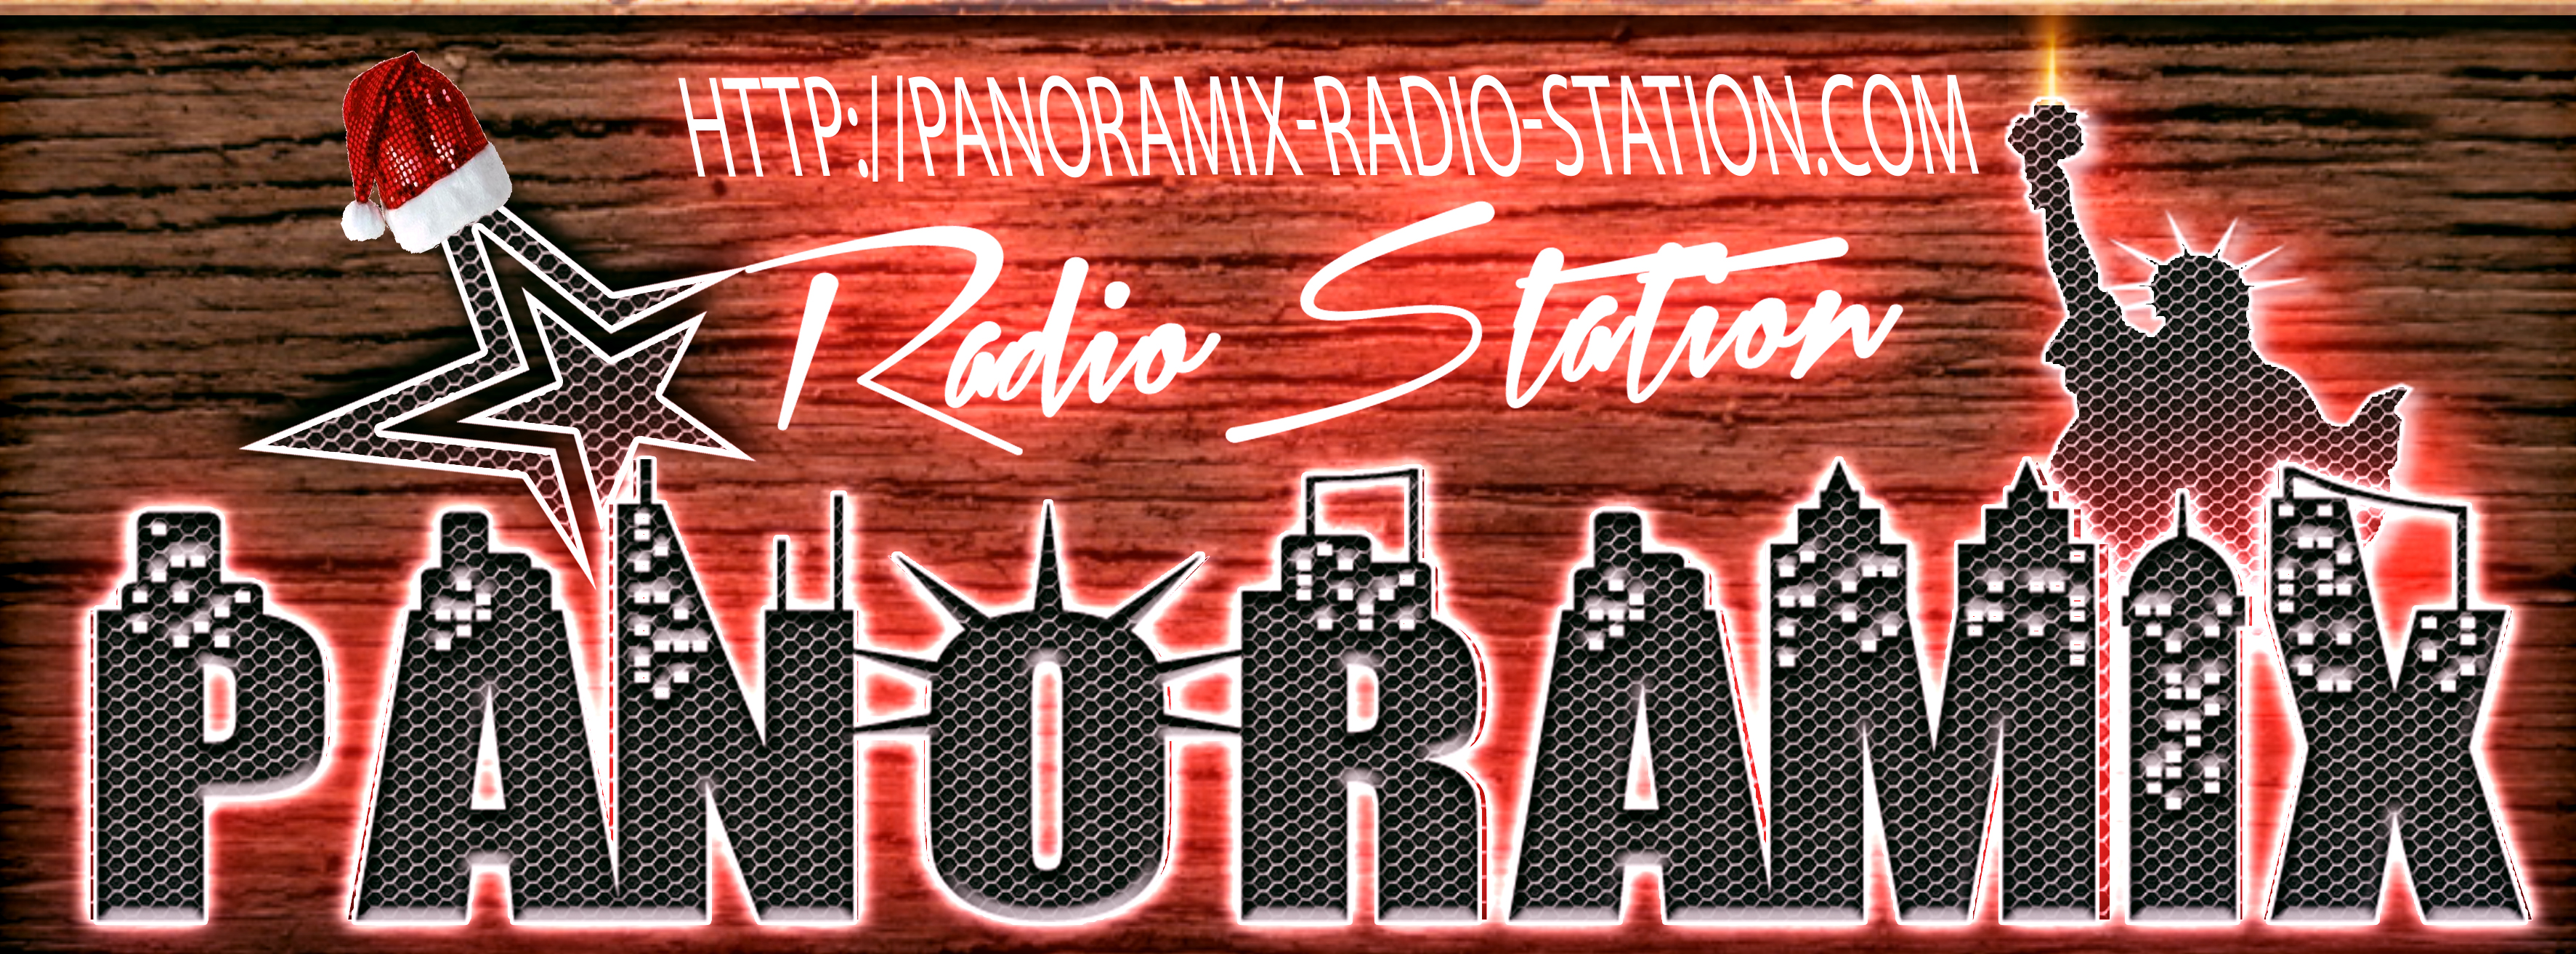 http://panoramix-radio-station.com/wp-content/uploads/2017/12/NEONBOIS-FONCE-PANORAMIX-rouge-noel-banniere-2017-PANO.jpg